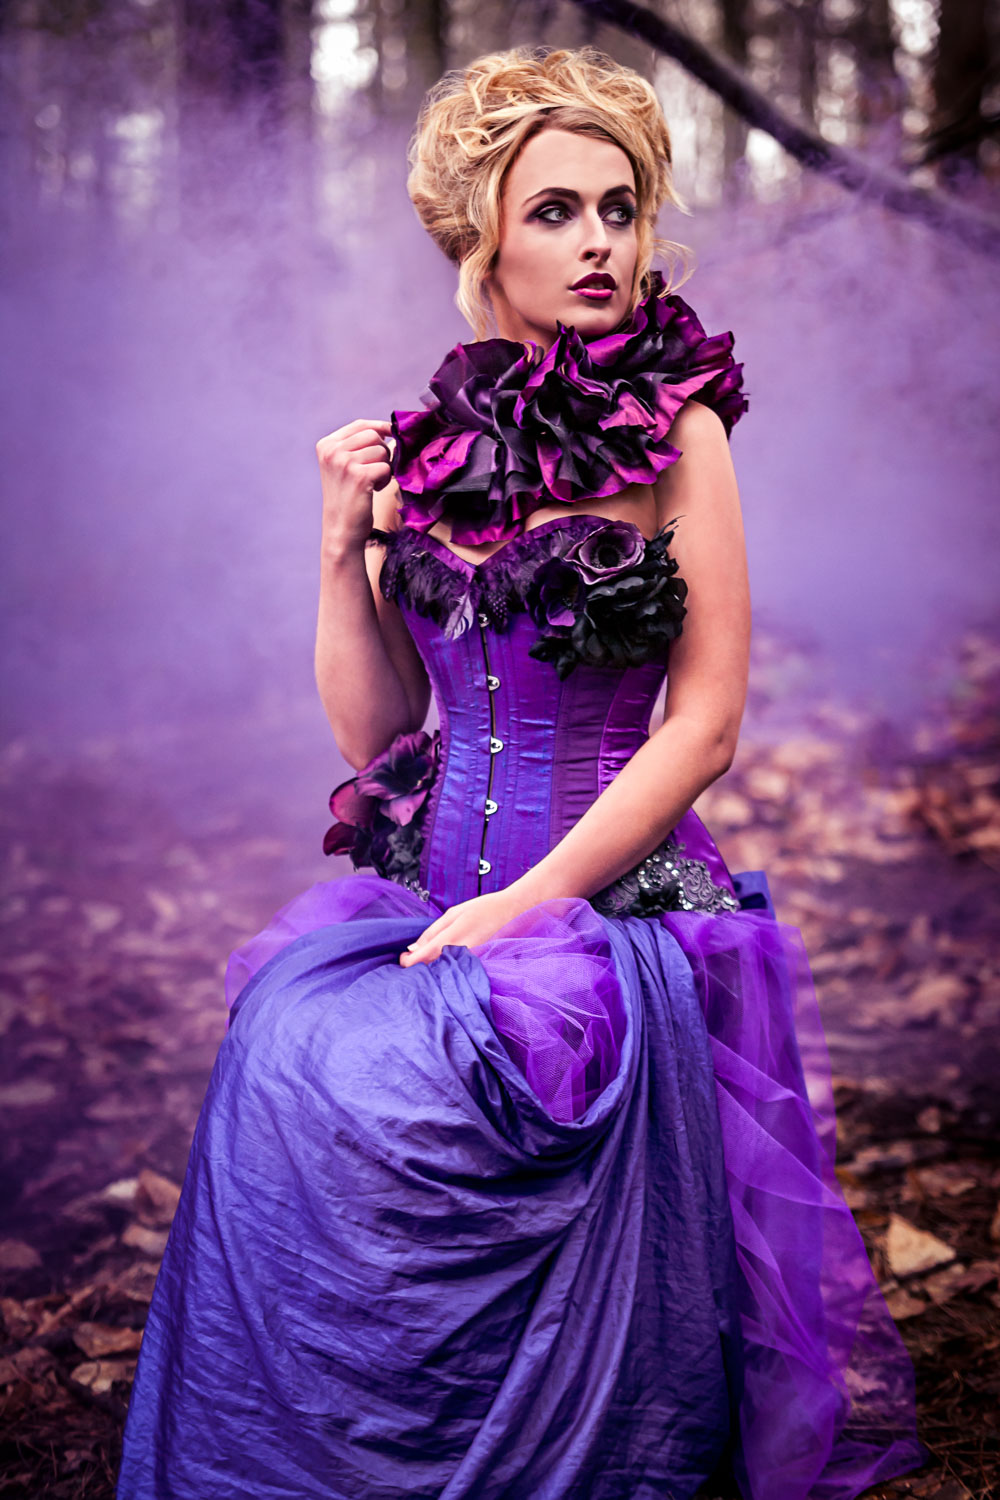 Female model dressed as a purple rose wearing a purple corset and neck ruffle in an enchanted forest with purple smoke